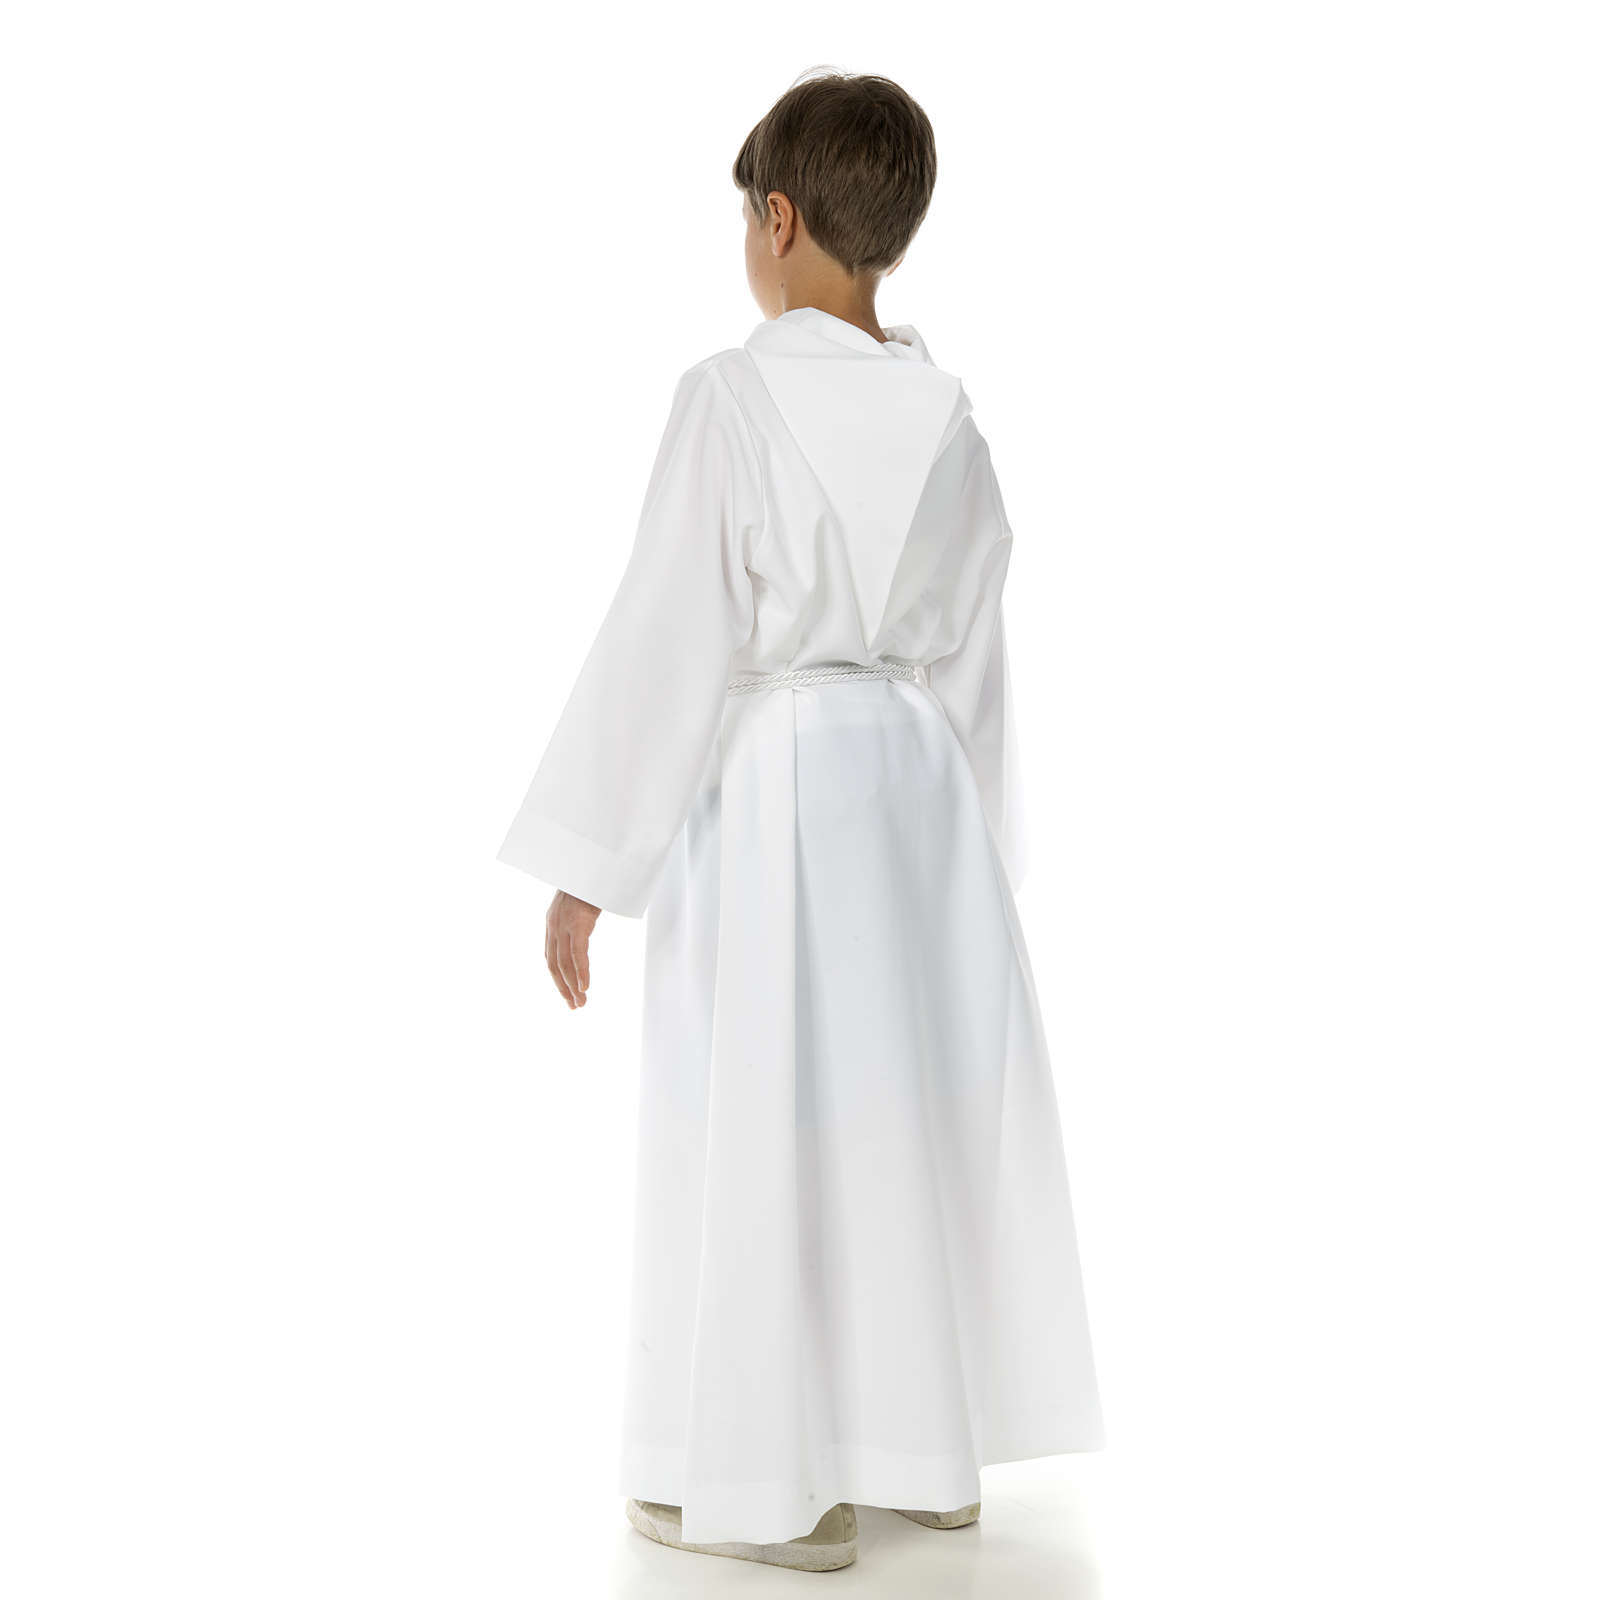 Catholic Alb with hood for first communion 4